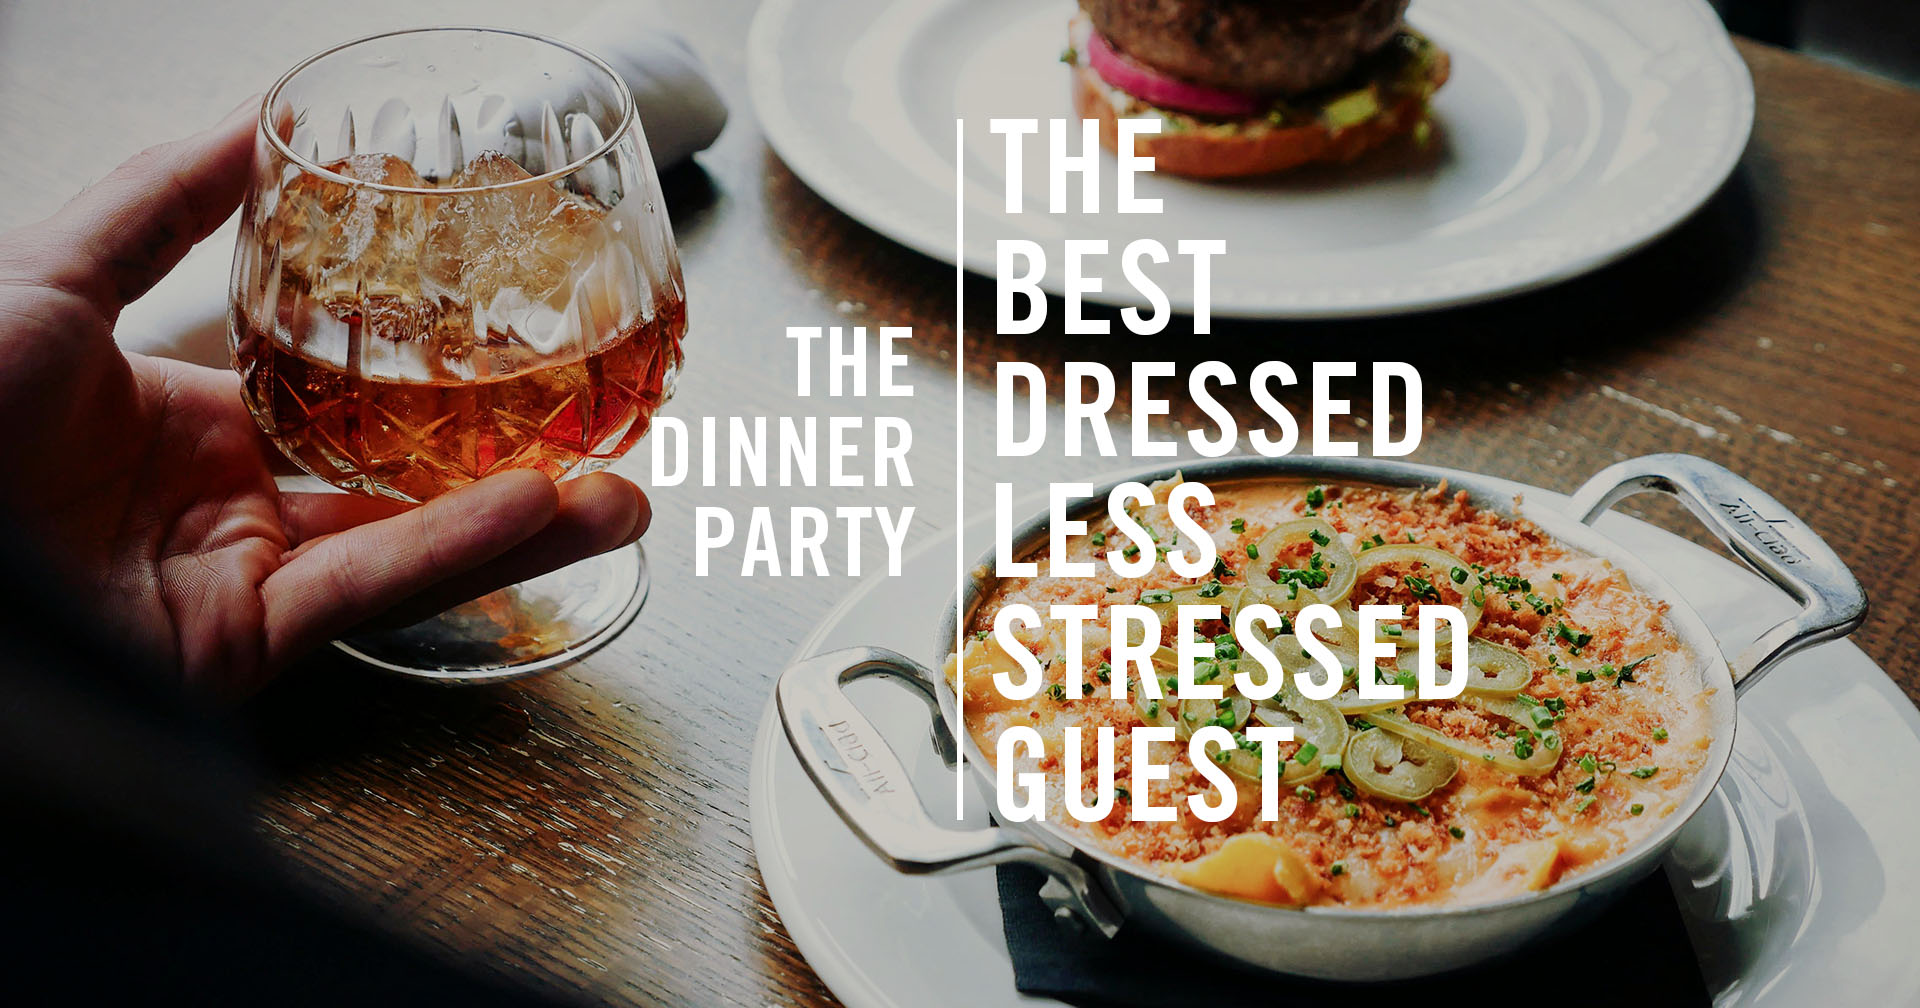 The Best Dressed Less Stressed Guest